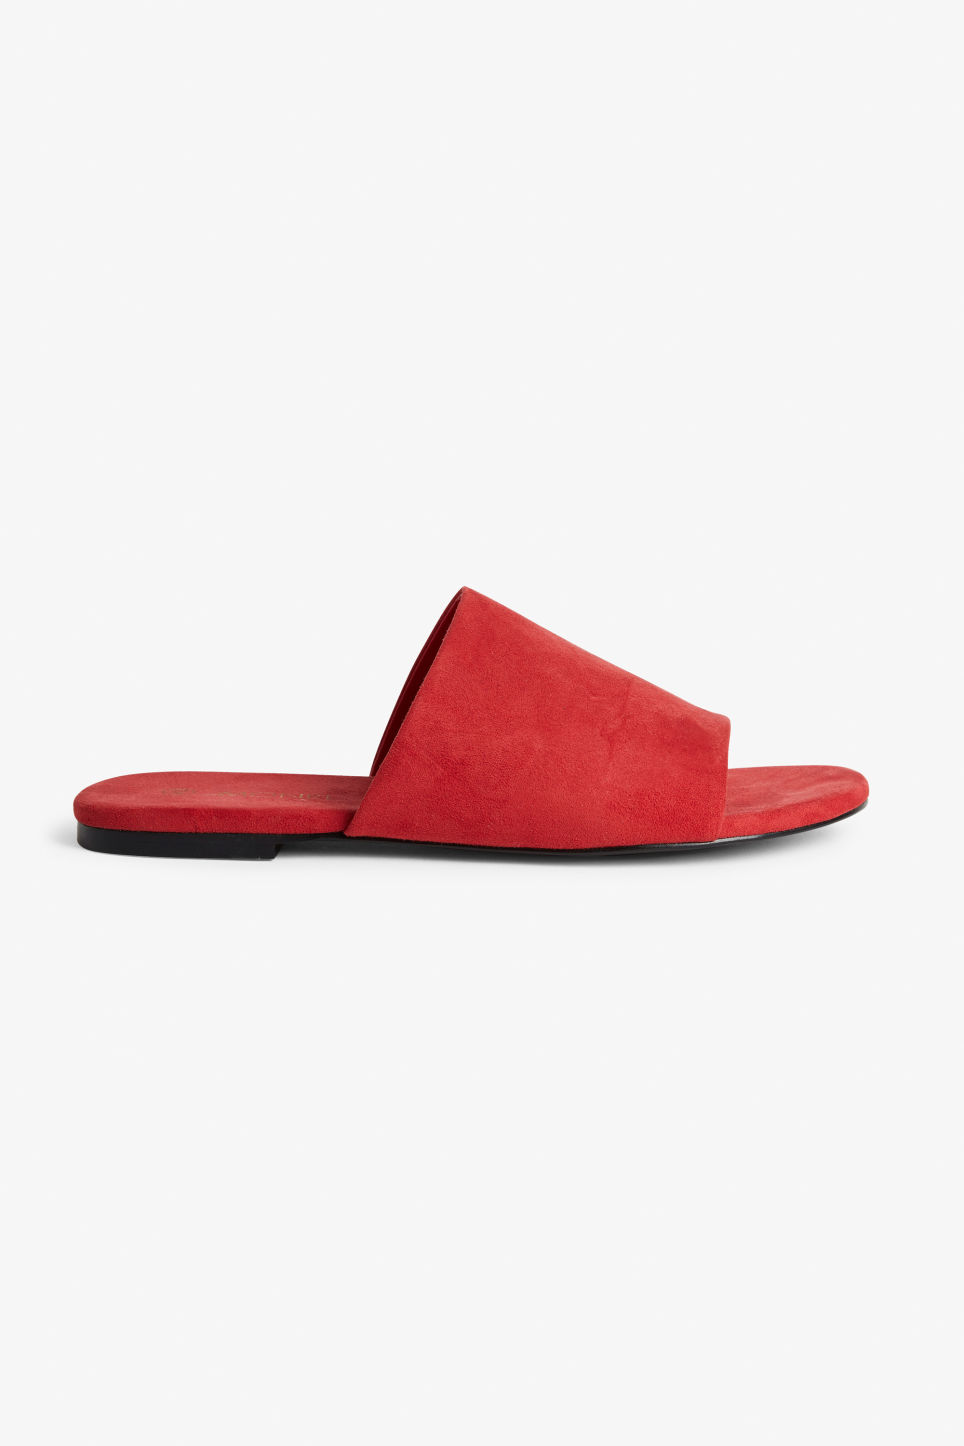 Detailed image of Monki slippers in red